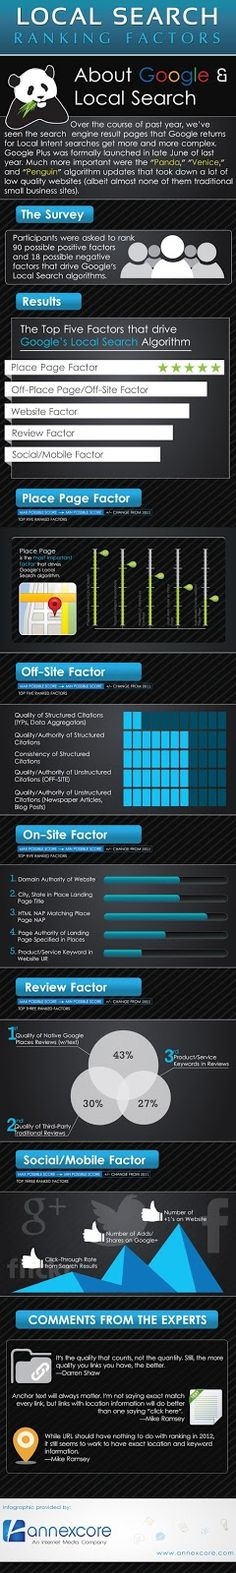 Local Search Ranking Factors - Local Seo Infographic by http://www.bootcampmedia.co.uk/